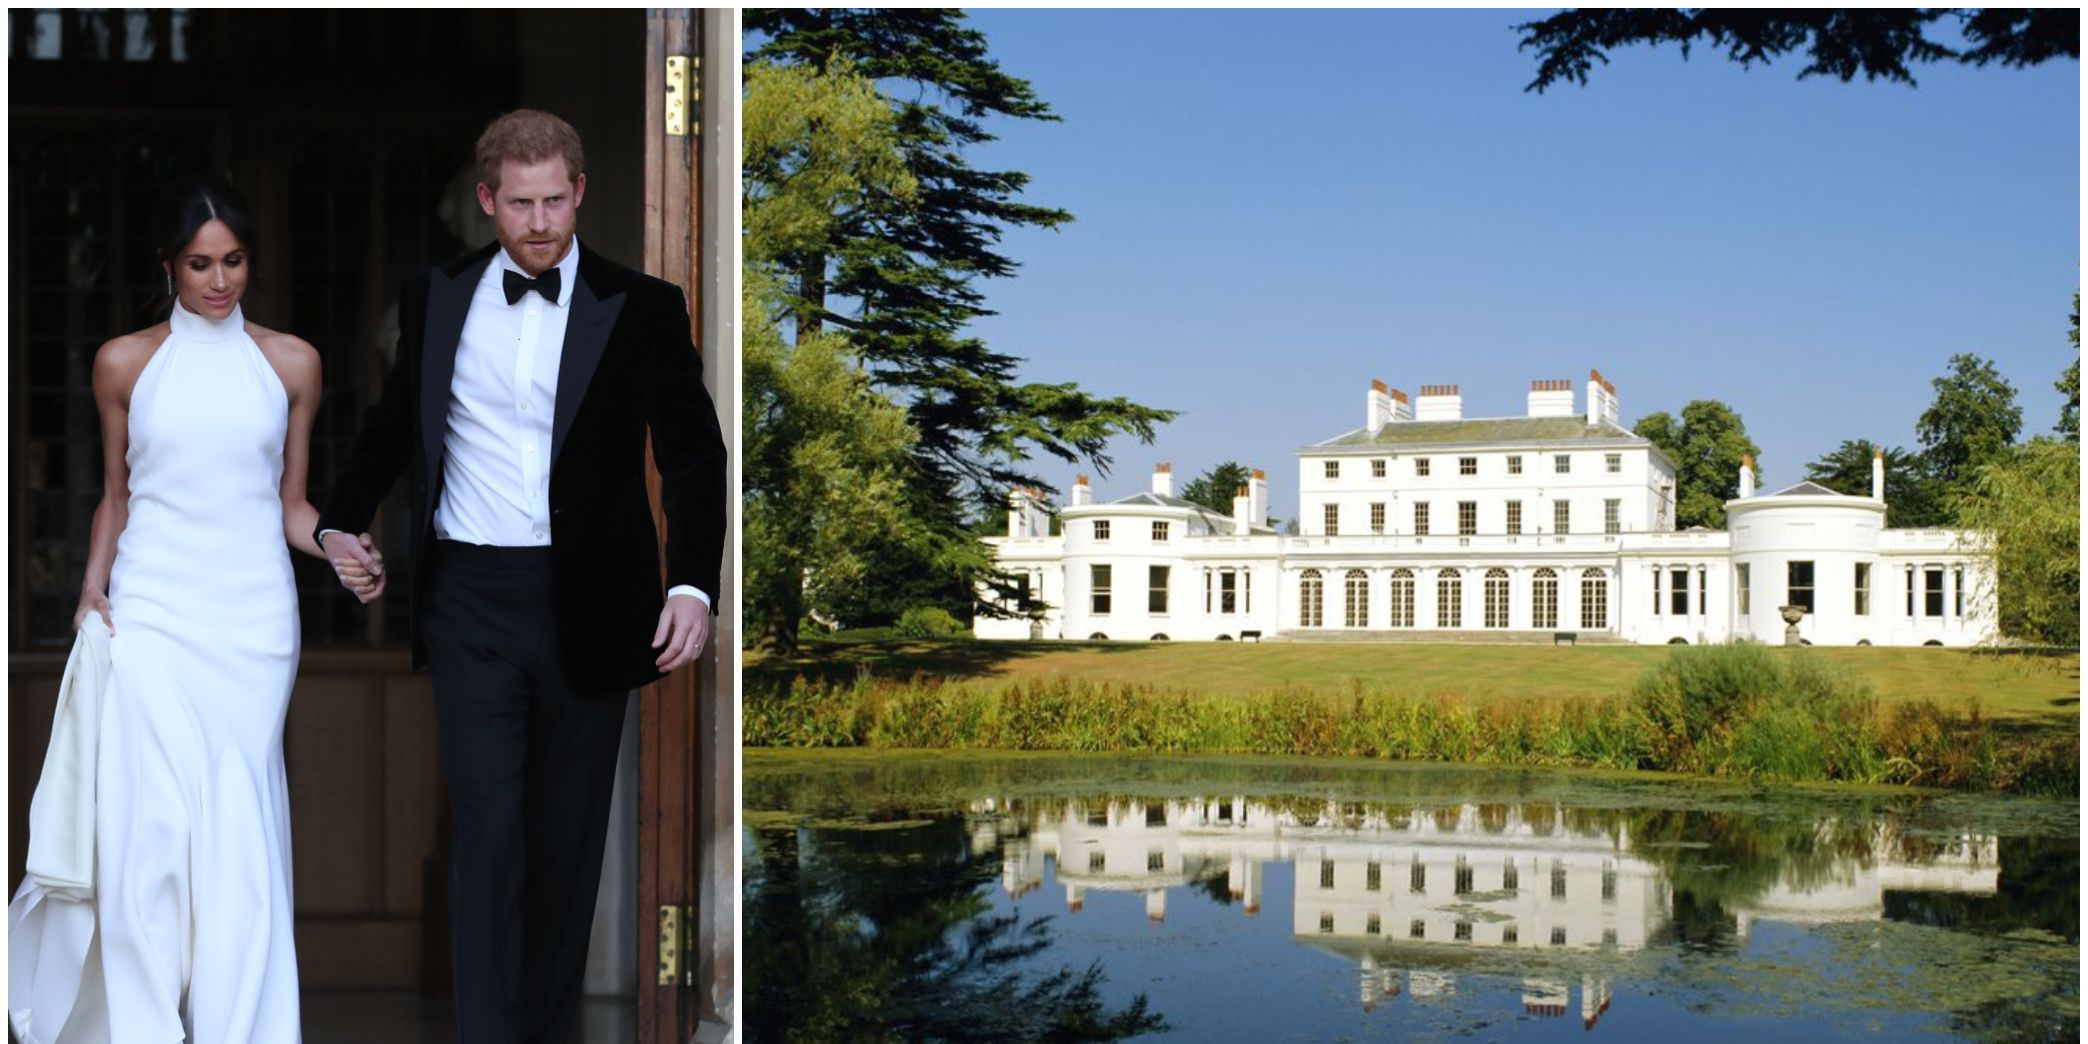 Prince Harry and Meghan Markle / Frogmore House